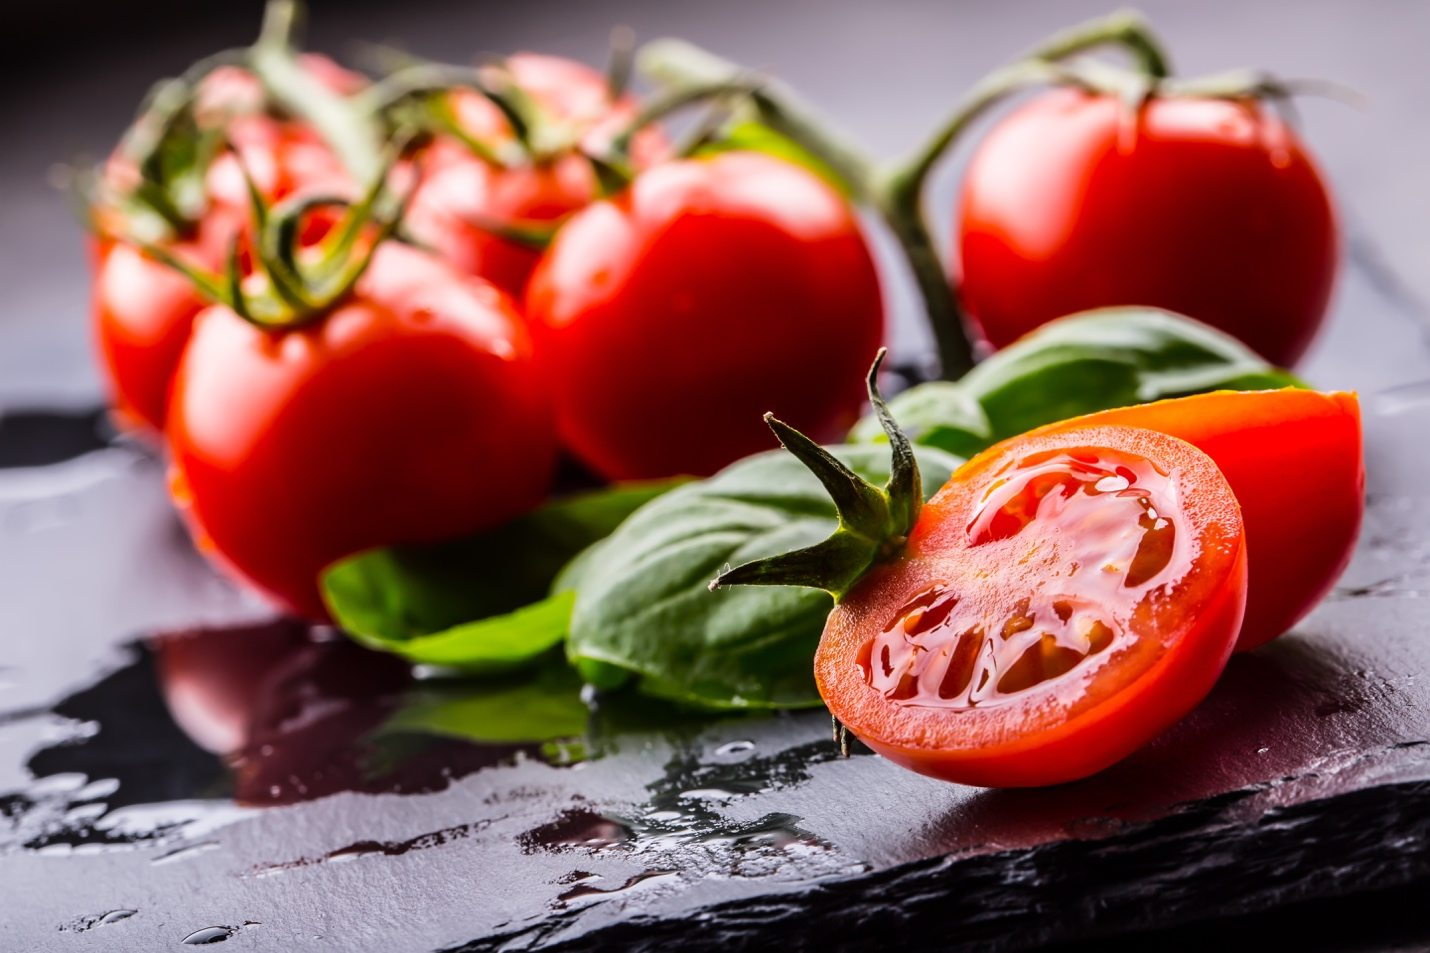 tomatoes - Top 20 Natural Foods To Help You Manage Your Diabetes Effectively